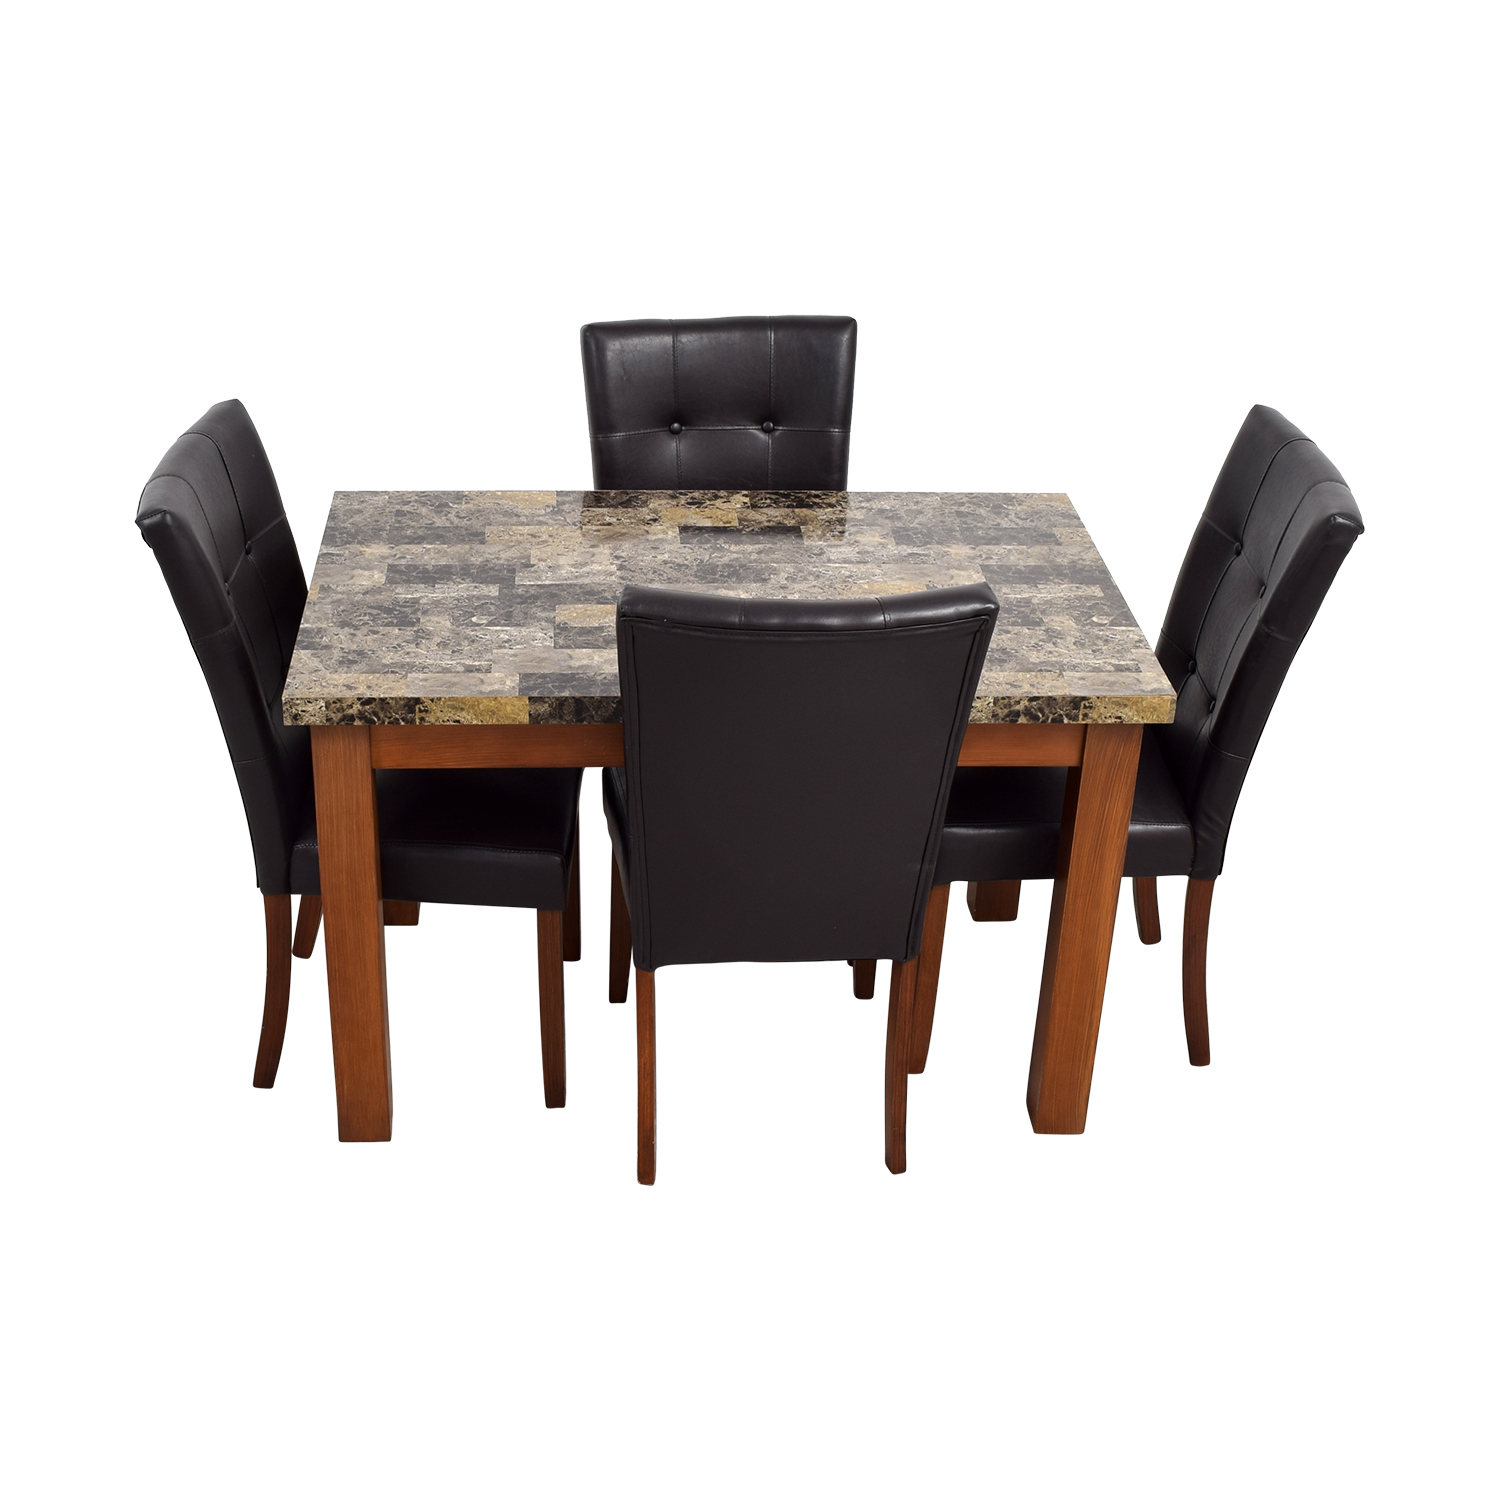 Faux Marble Dining Table with Brown Tufted Leather Chairs nyc